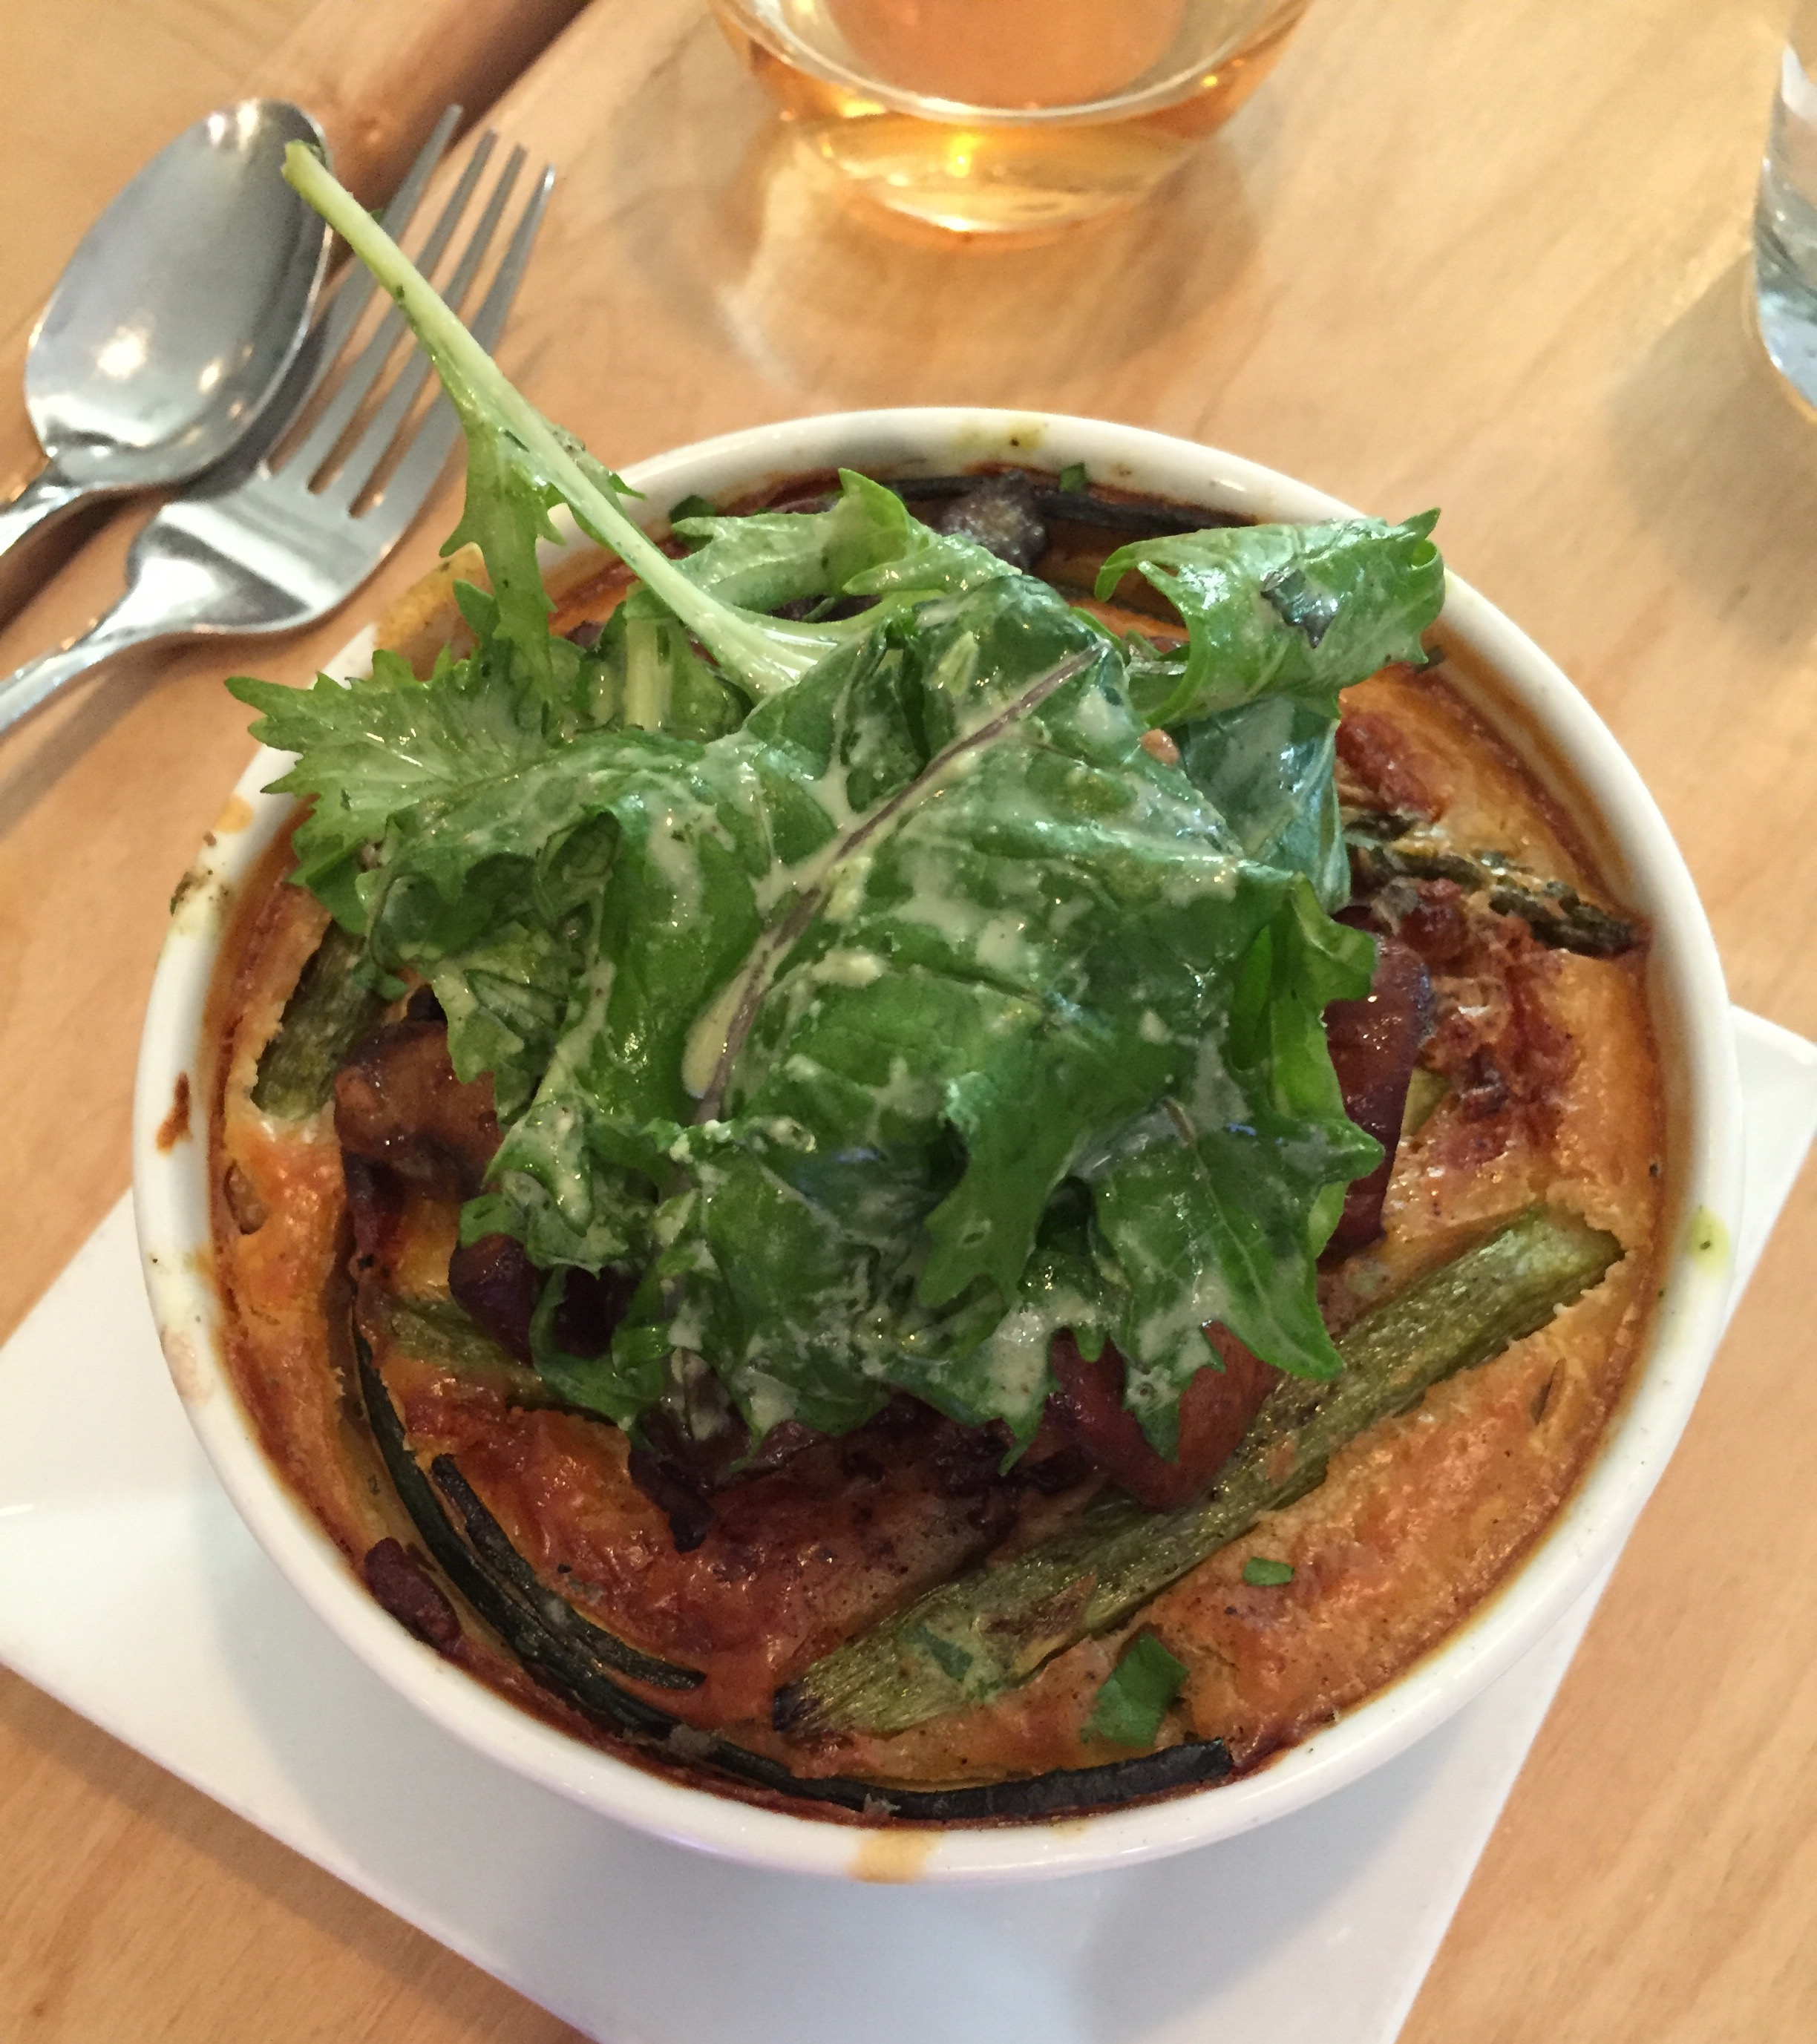 Green Gem Asparagus: Book Launch Dinner Party At Plant